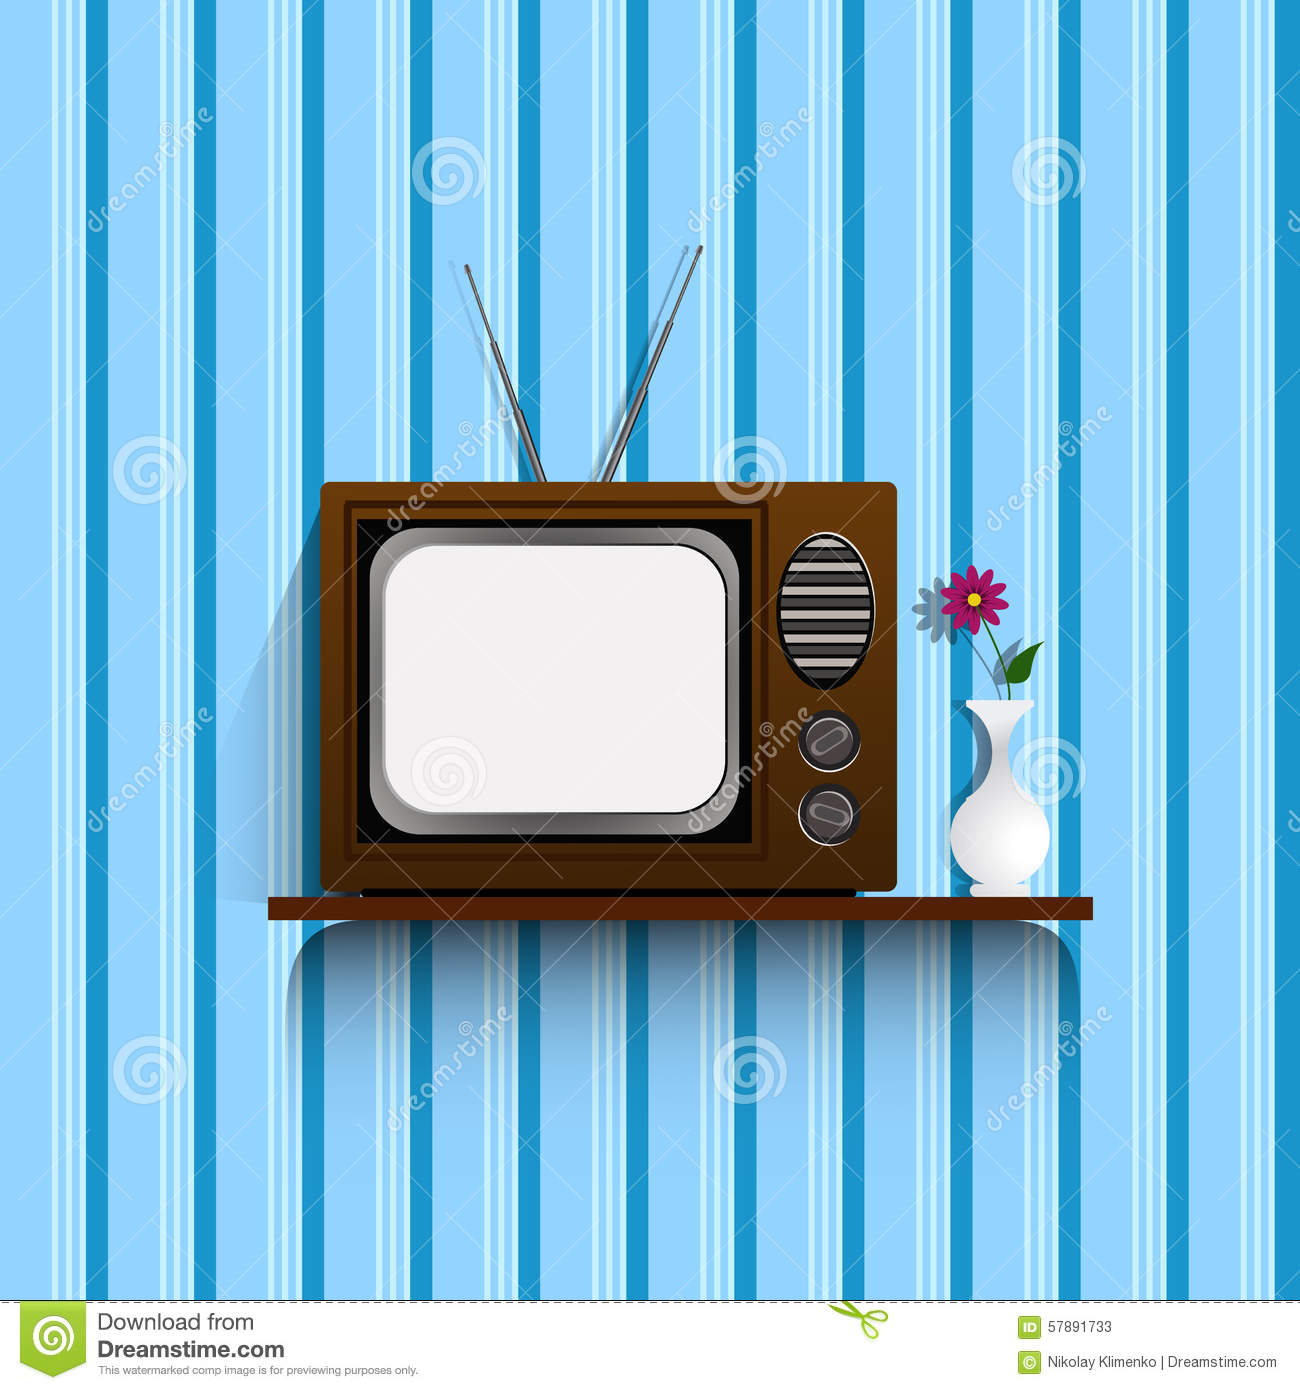 Retro Tv With Vintage Wallpaper.eps 10. Stock Vector - Image: 57891733